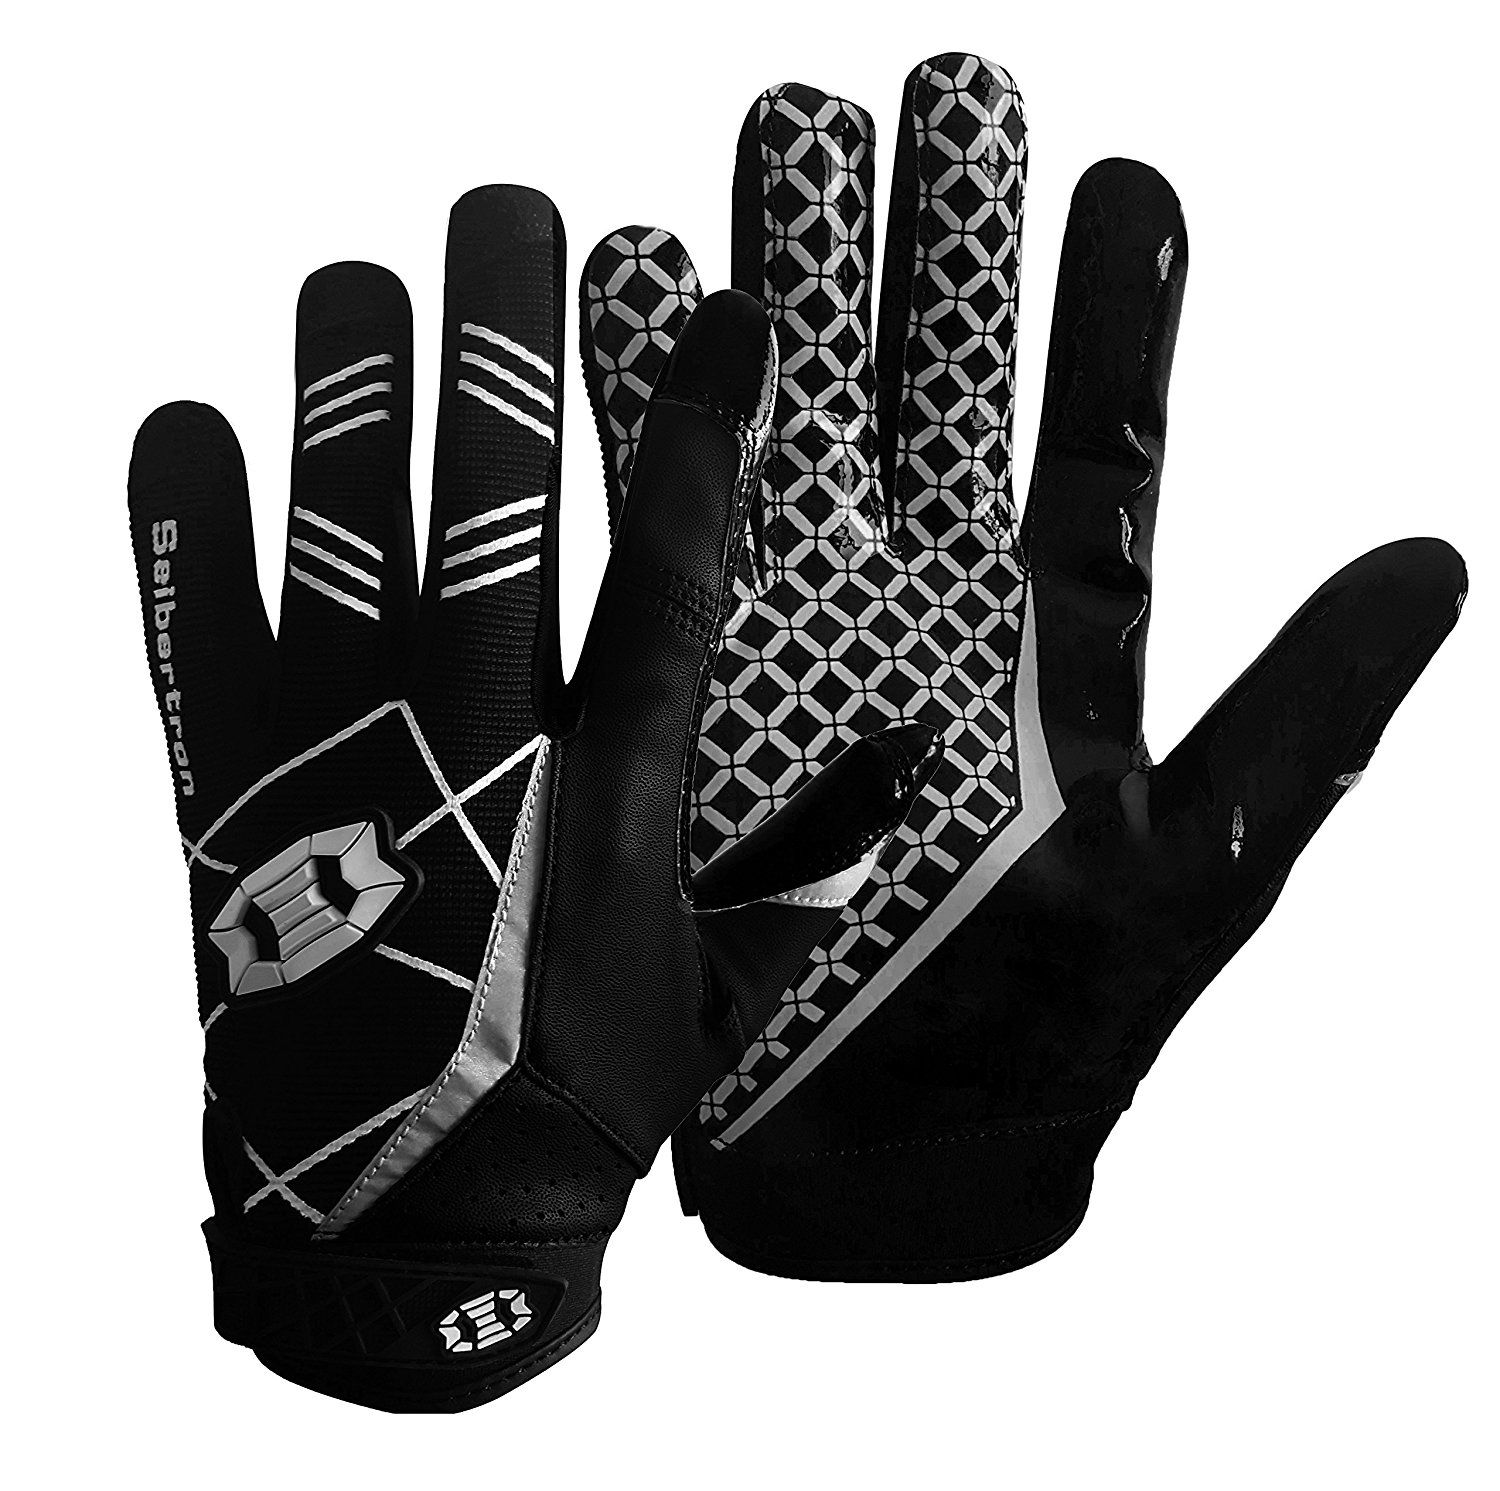 Best youth football gloves for kids tackle flag